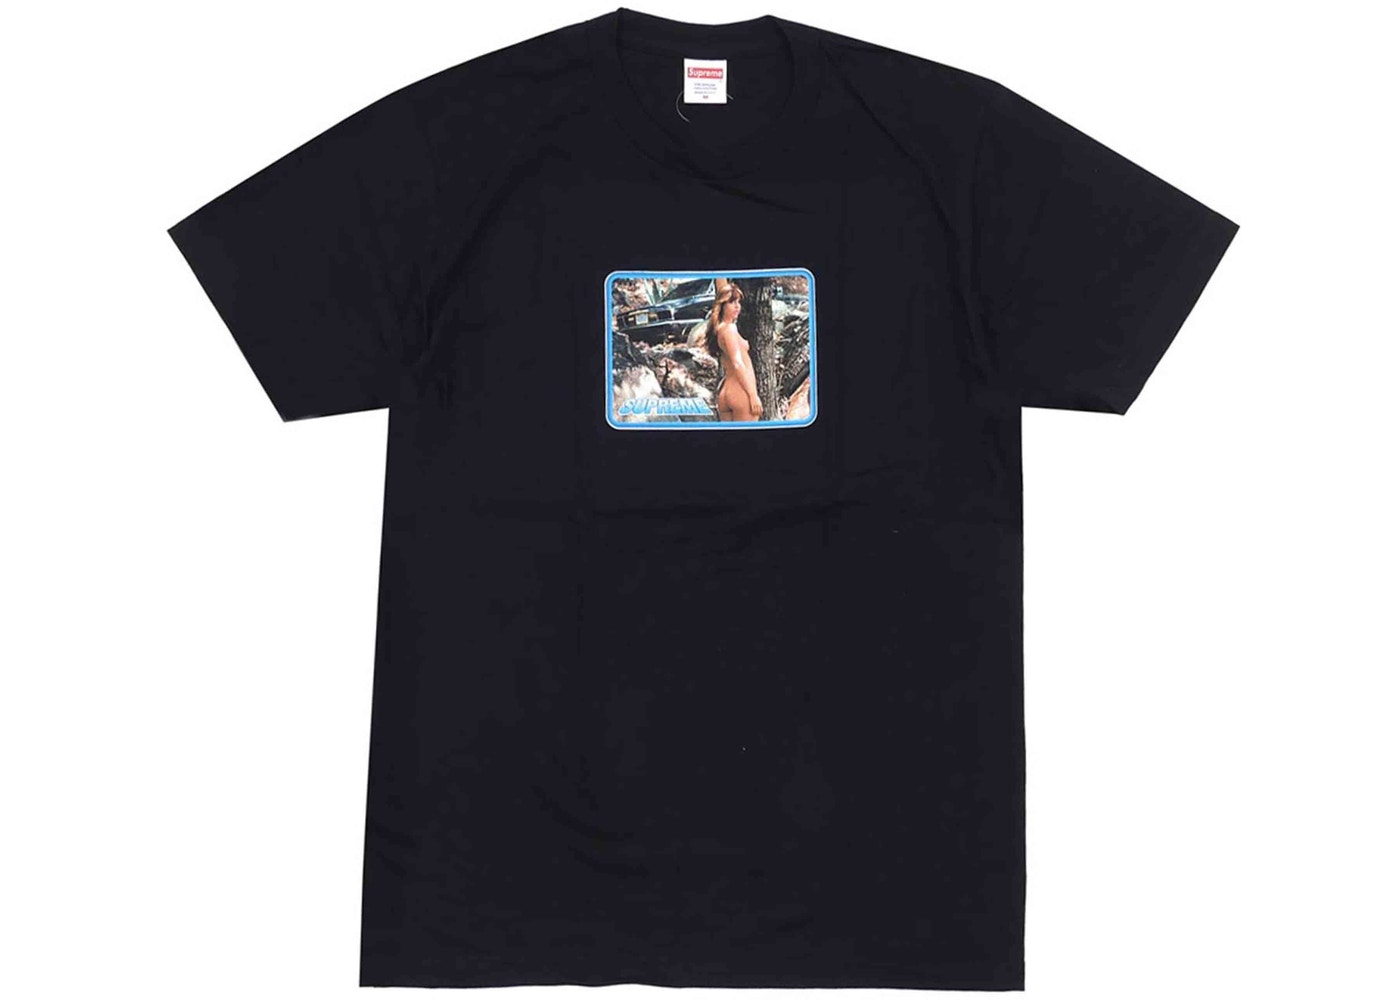 baac2c2e Supreme Larry Clark Girl Tee Black - SS17